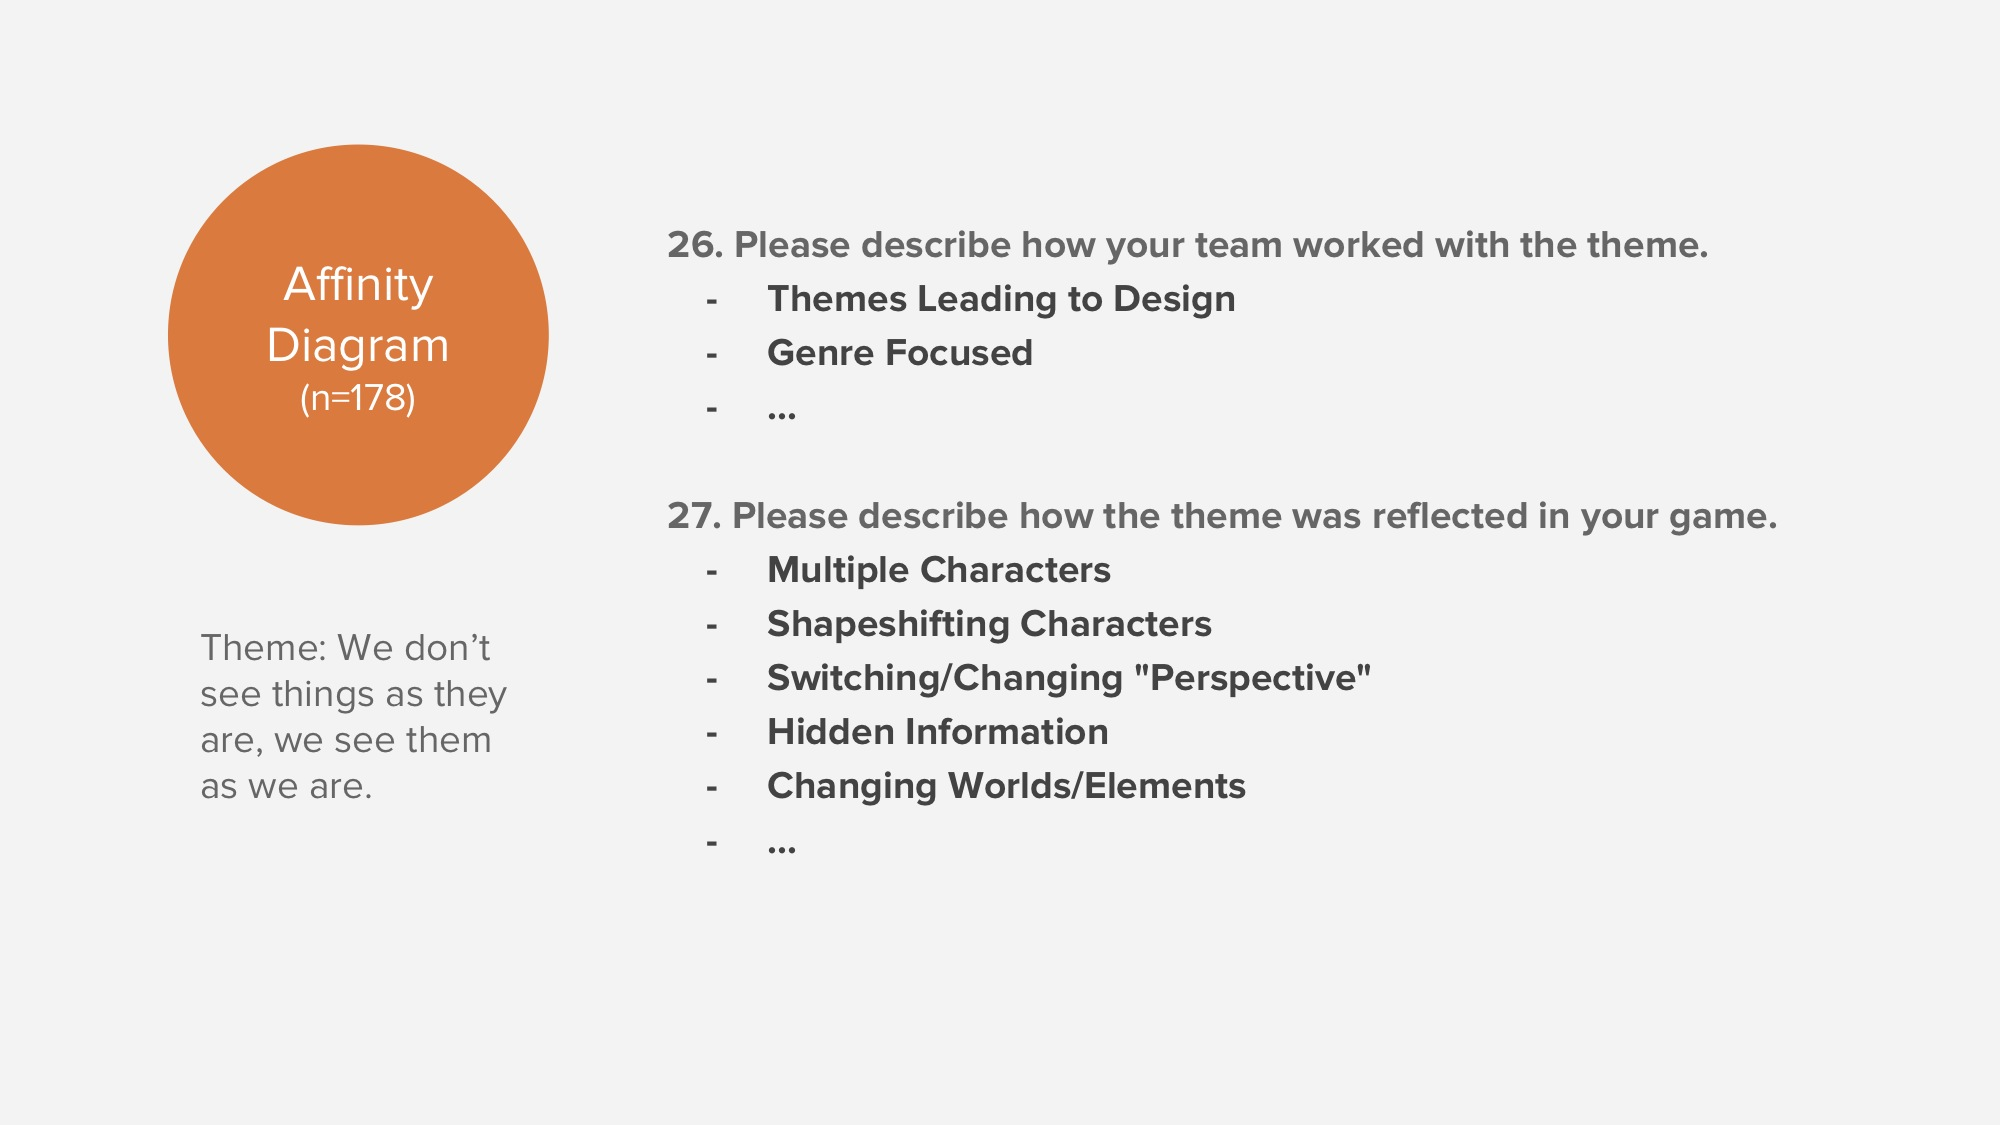 2014.10.17 - -How Are Ideas Connected- Drawing the Design Process of Idea Networks in Global Game Jam- - Meaningful Play 2014 11.jpeg